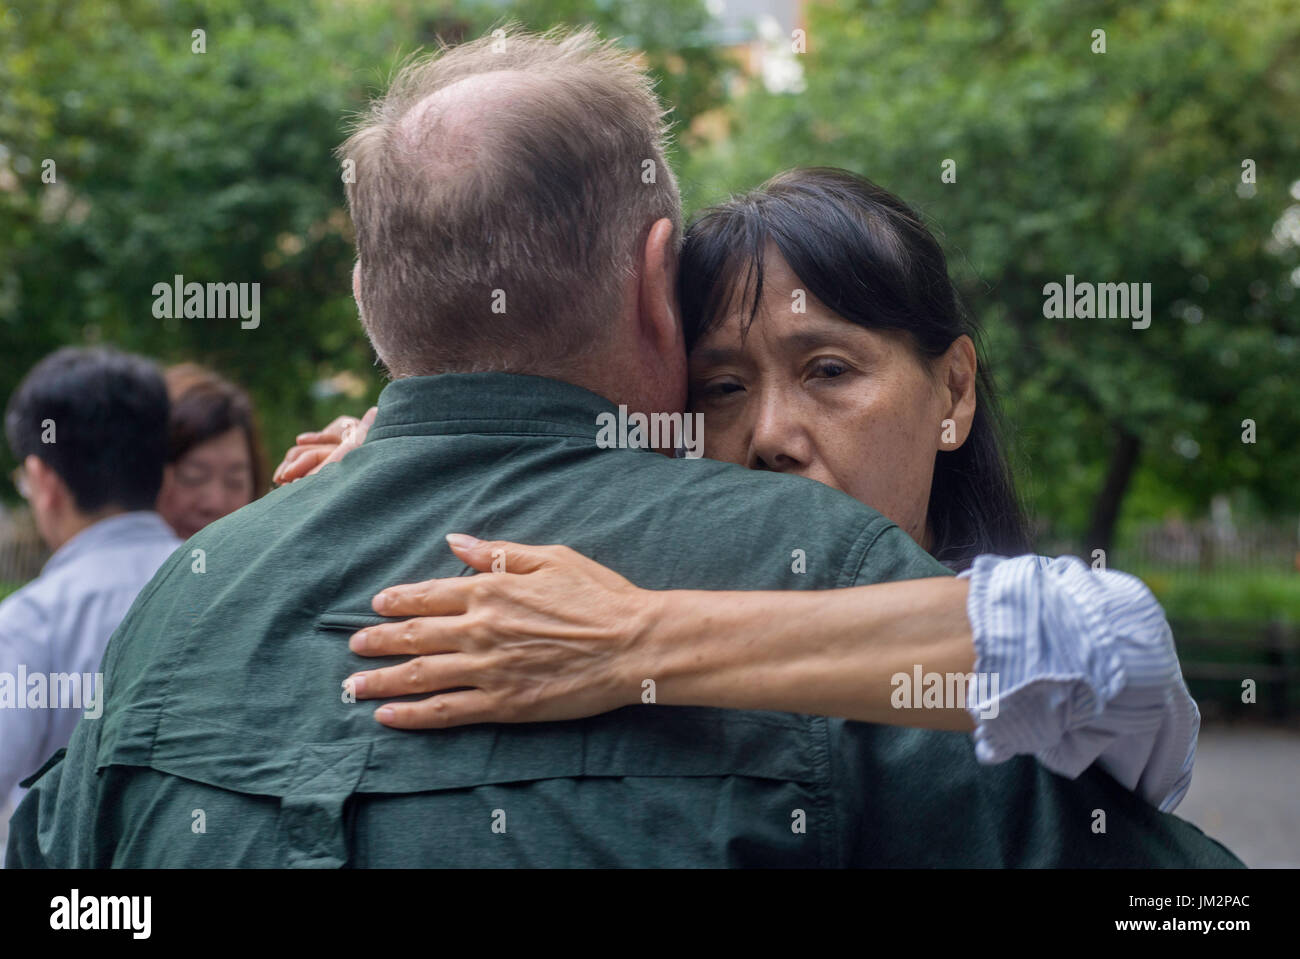 New York, NY 25 July 2017 - A couple dancing the tango on a summer evening in Washington Square Park ©Stacy Walsh Rosenstock - Stock Image